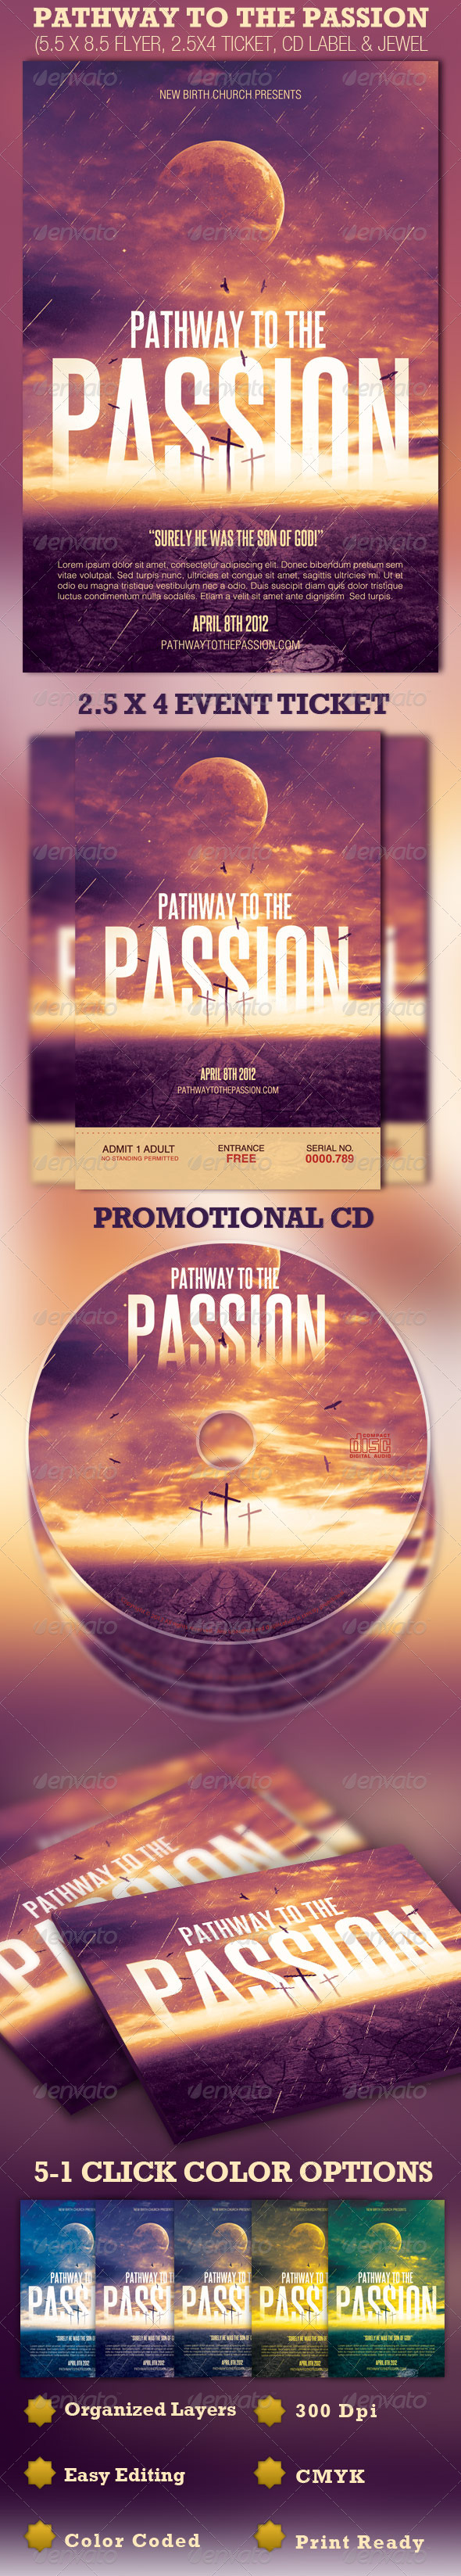 Pathway to the Passion Flyer, Ticket and CD - Church Flyers